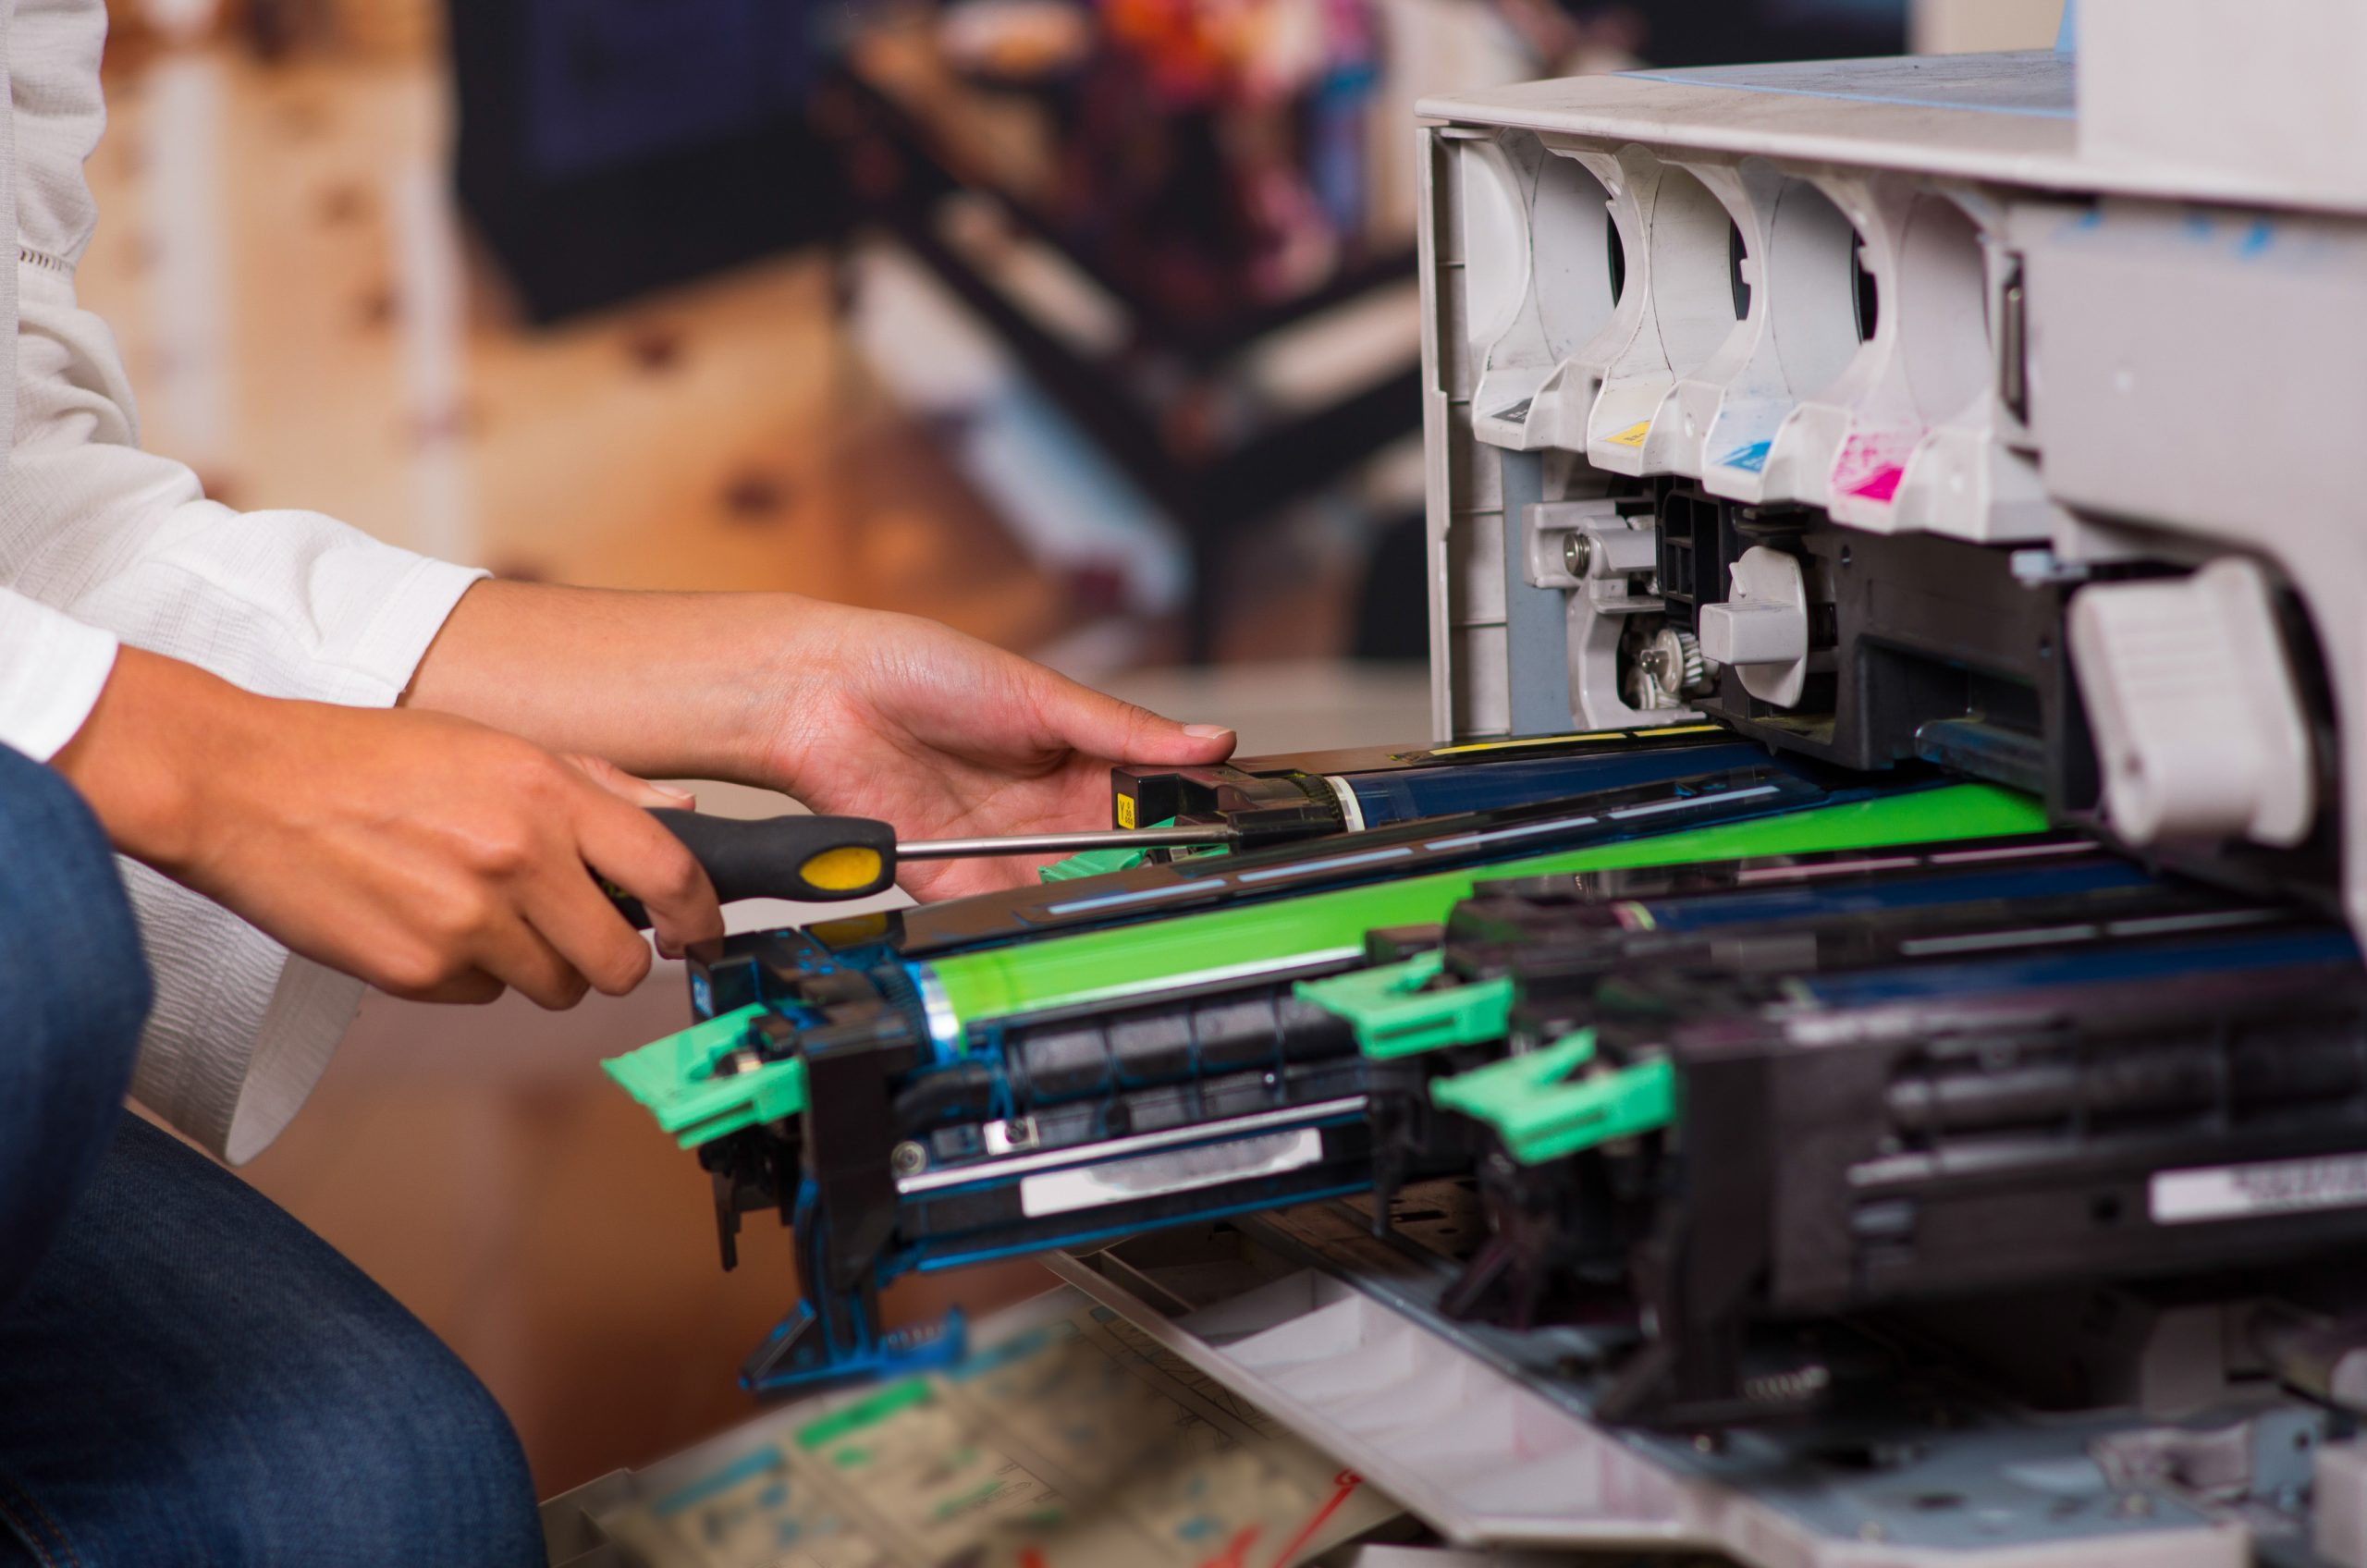 Our HP repair technicians will come to your office